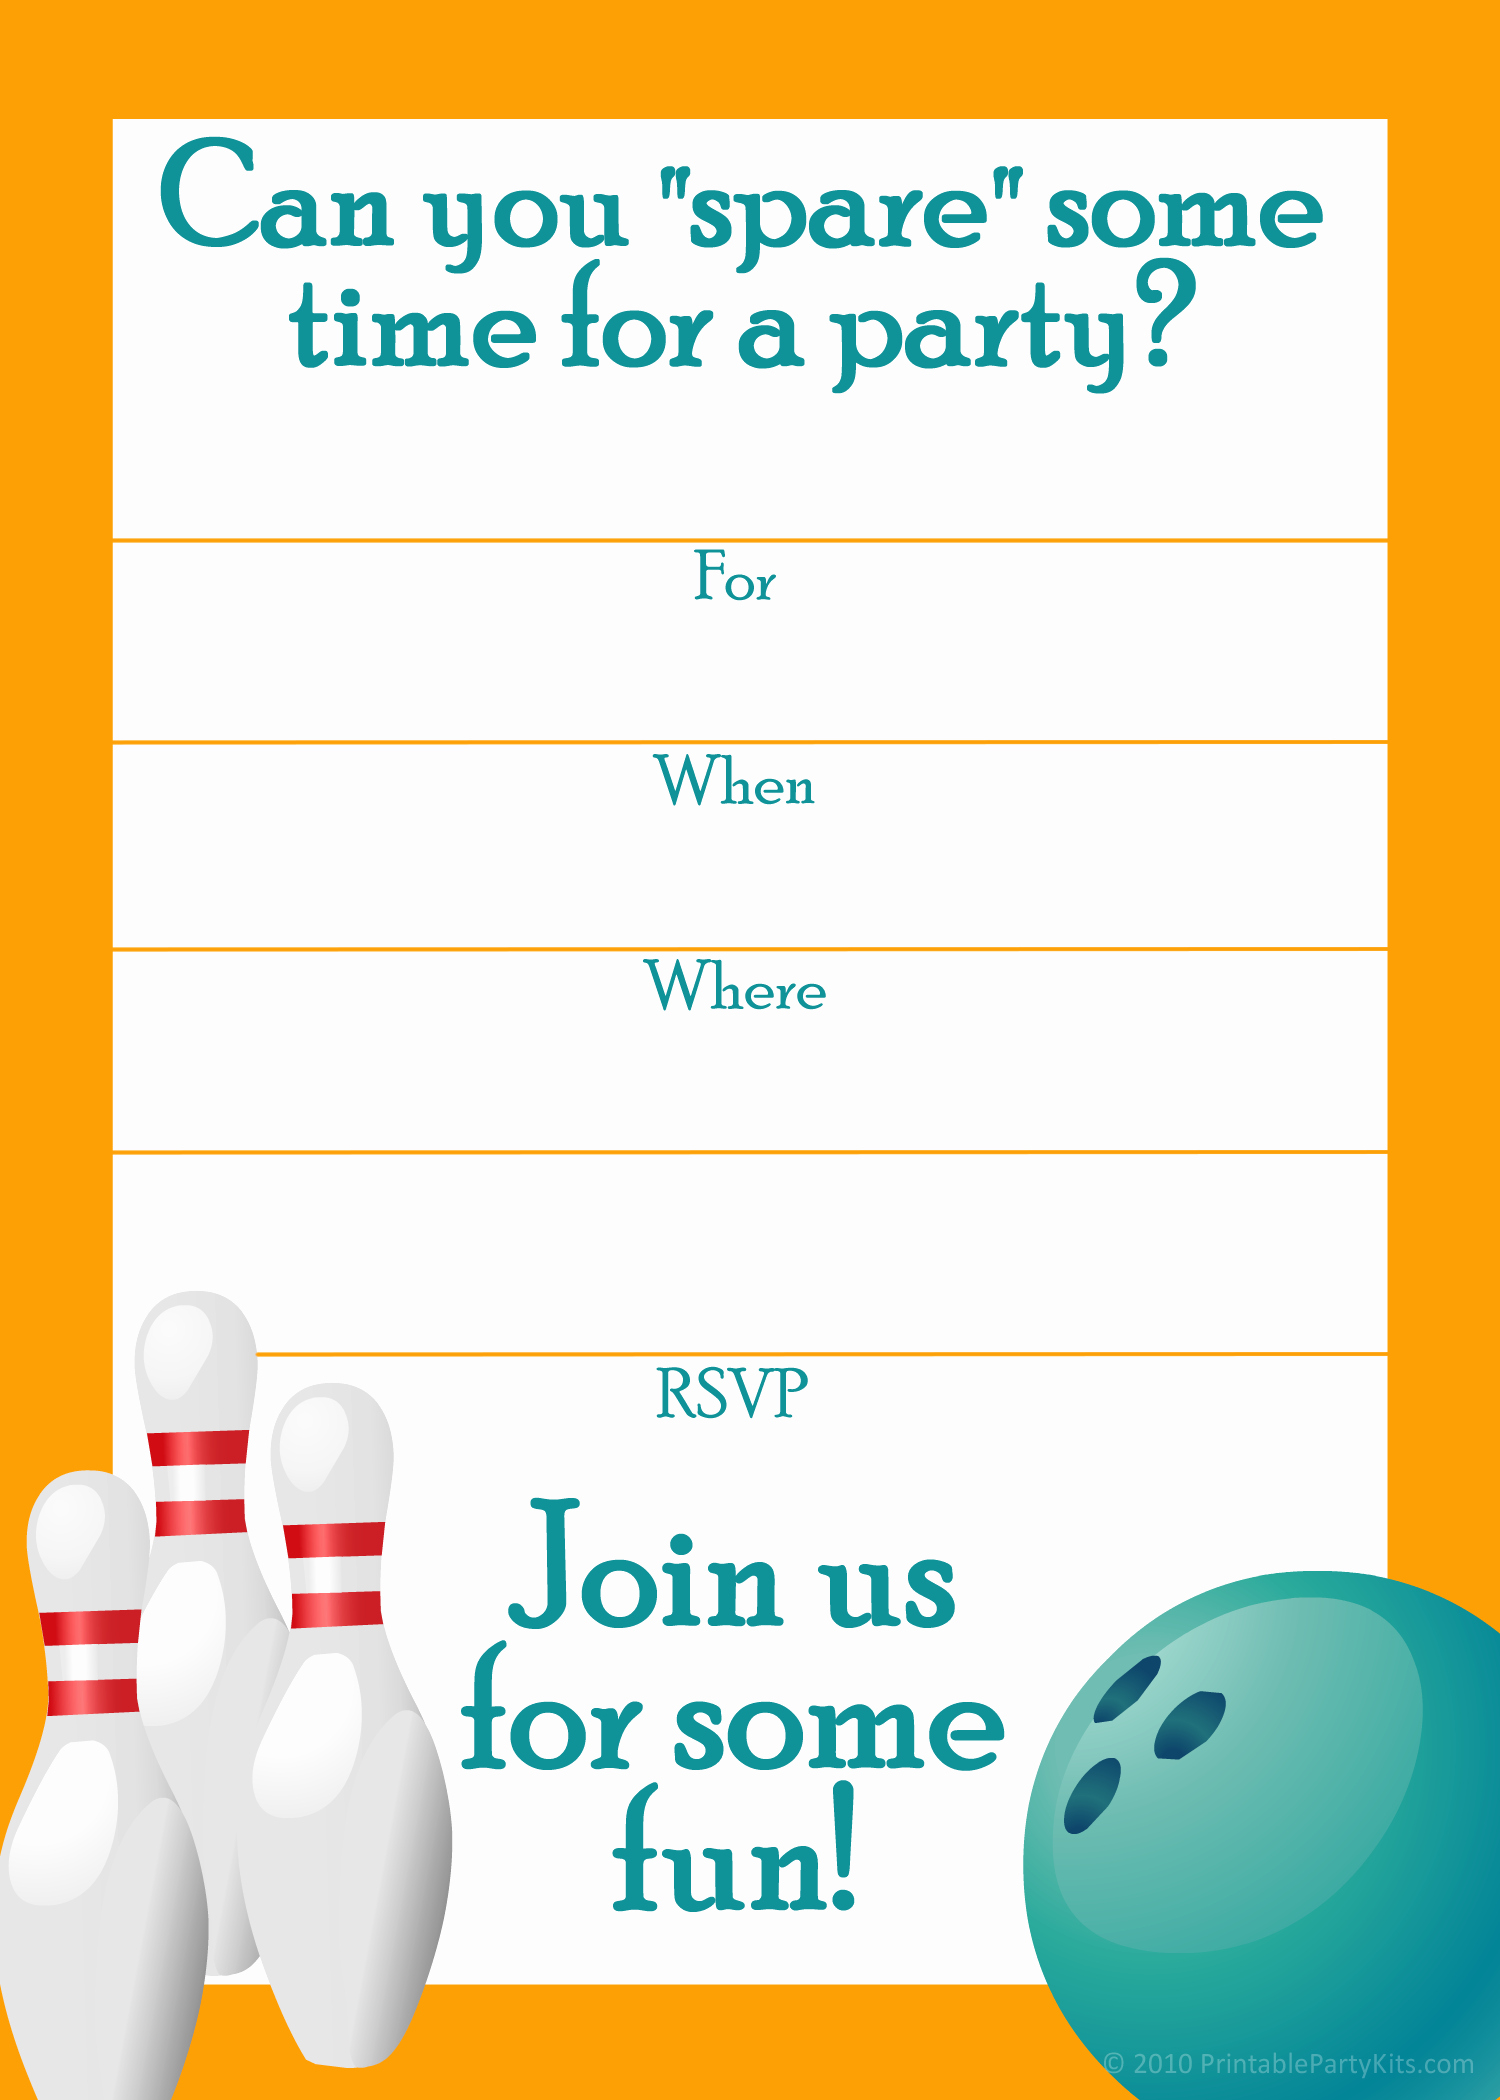 Bowling Party Invites Template Luxury Free Printable Sports Birthday Party Invitations Templates